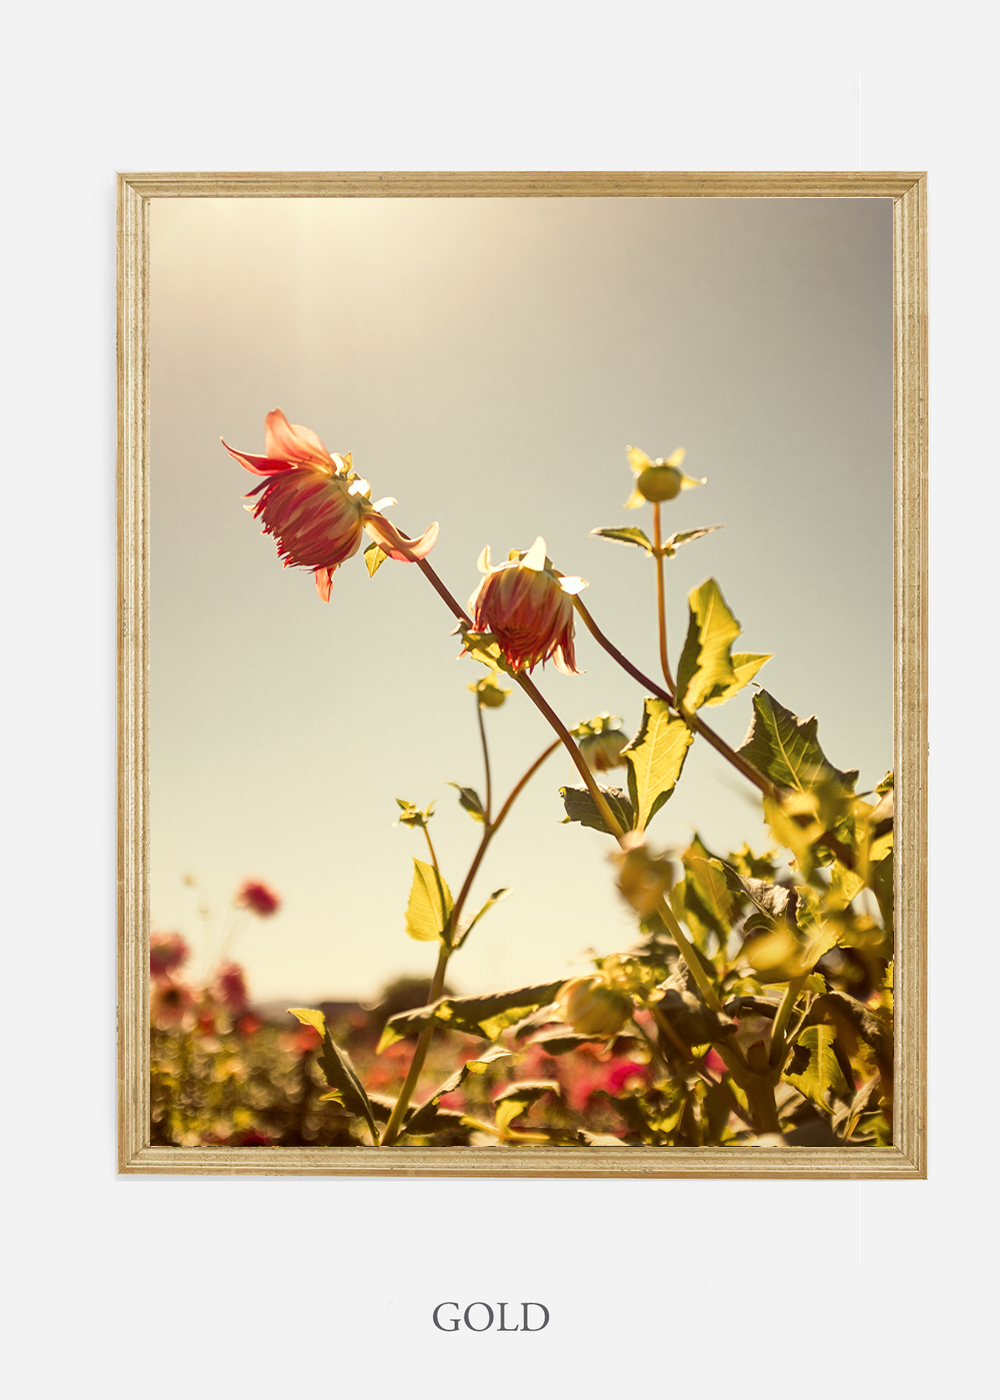 flora-no-10-gold-custom-frame-dahlia-print-floral-print-floral-art-wilder-california-botanical-prints-home-decor-design-prints-print-shop.jpg